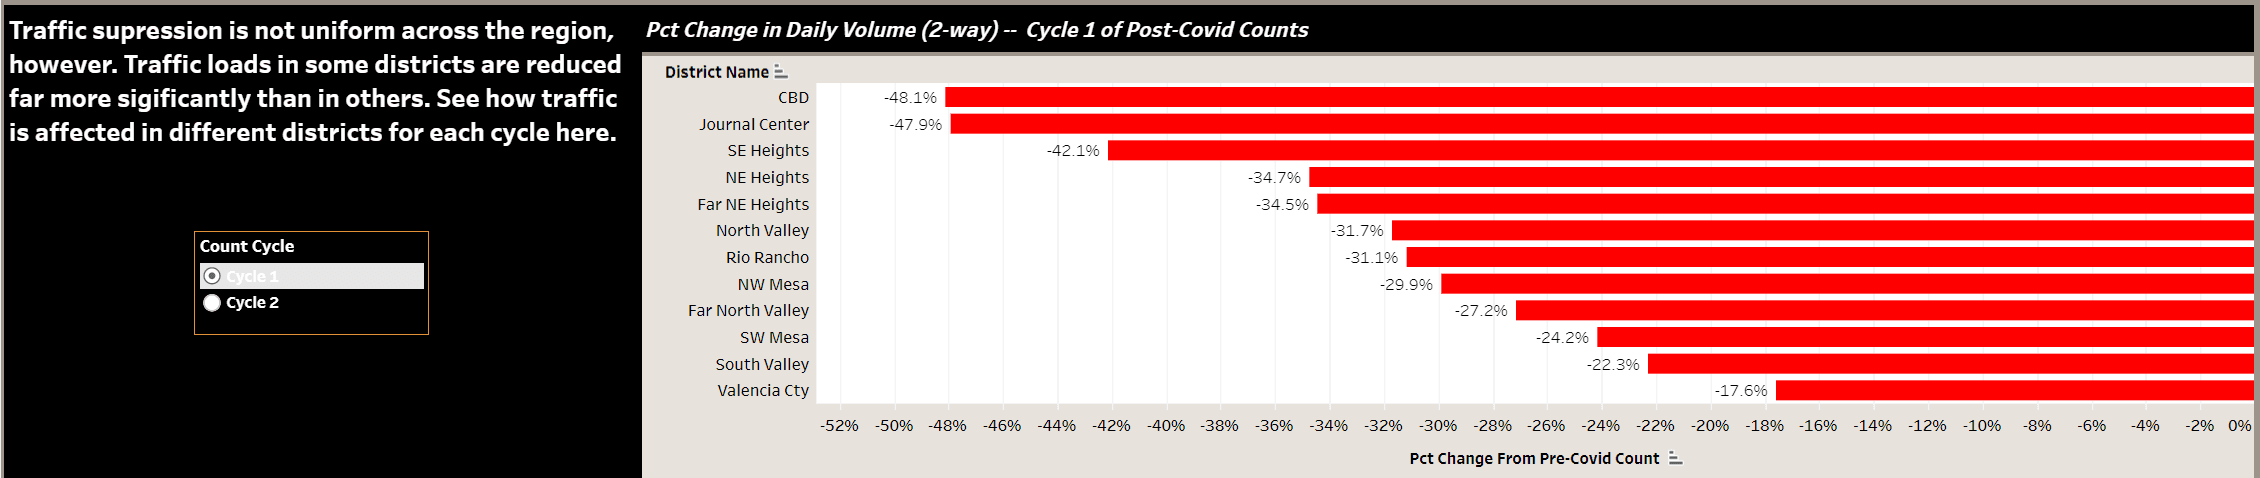 COVID Traffic Counts-Cycle 1 District Changes Histogram